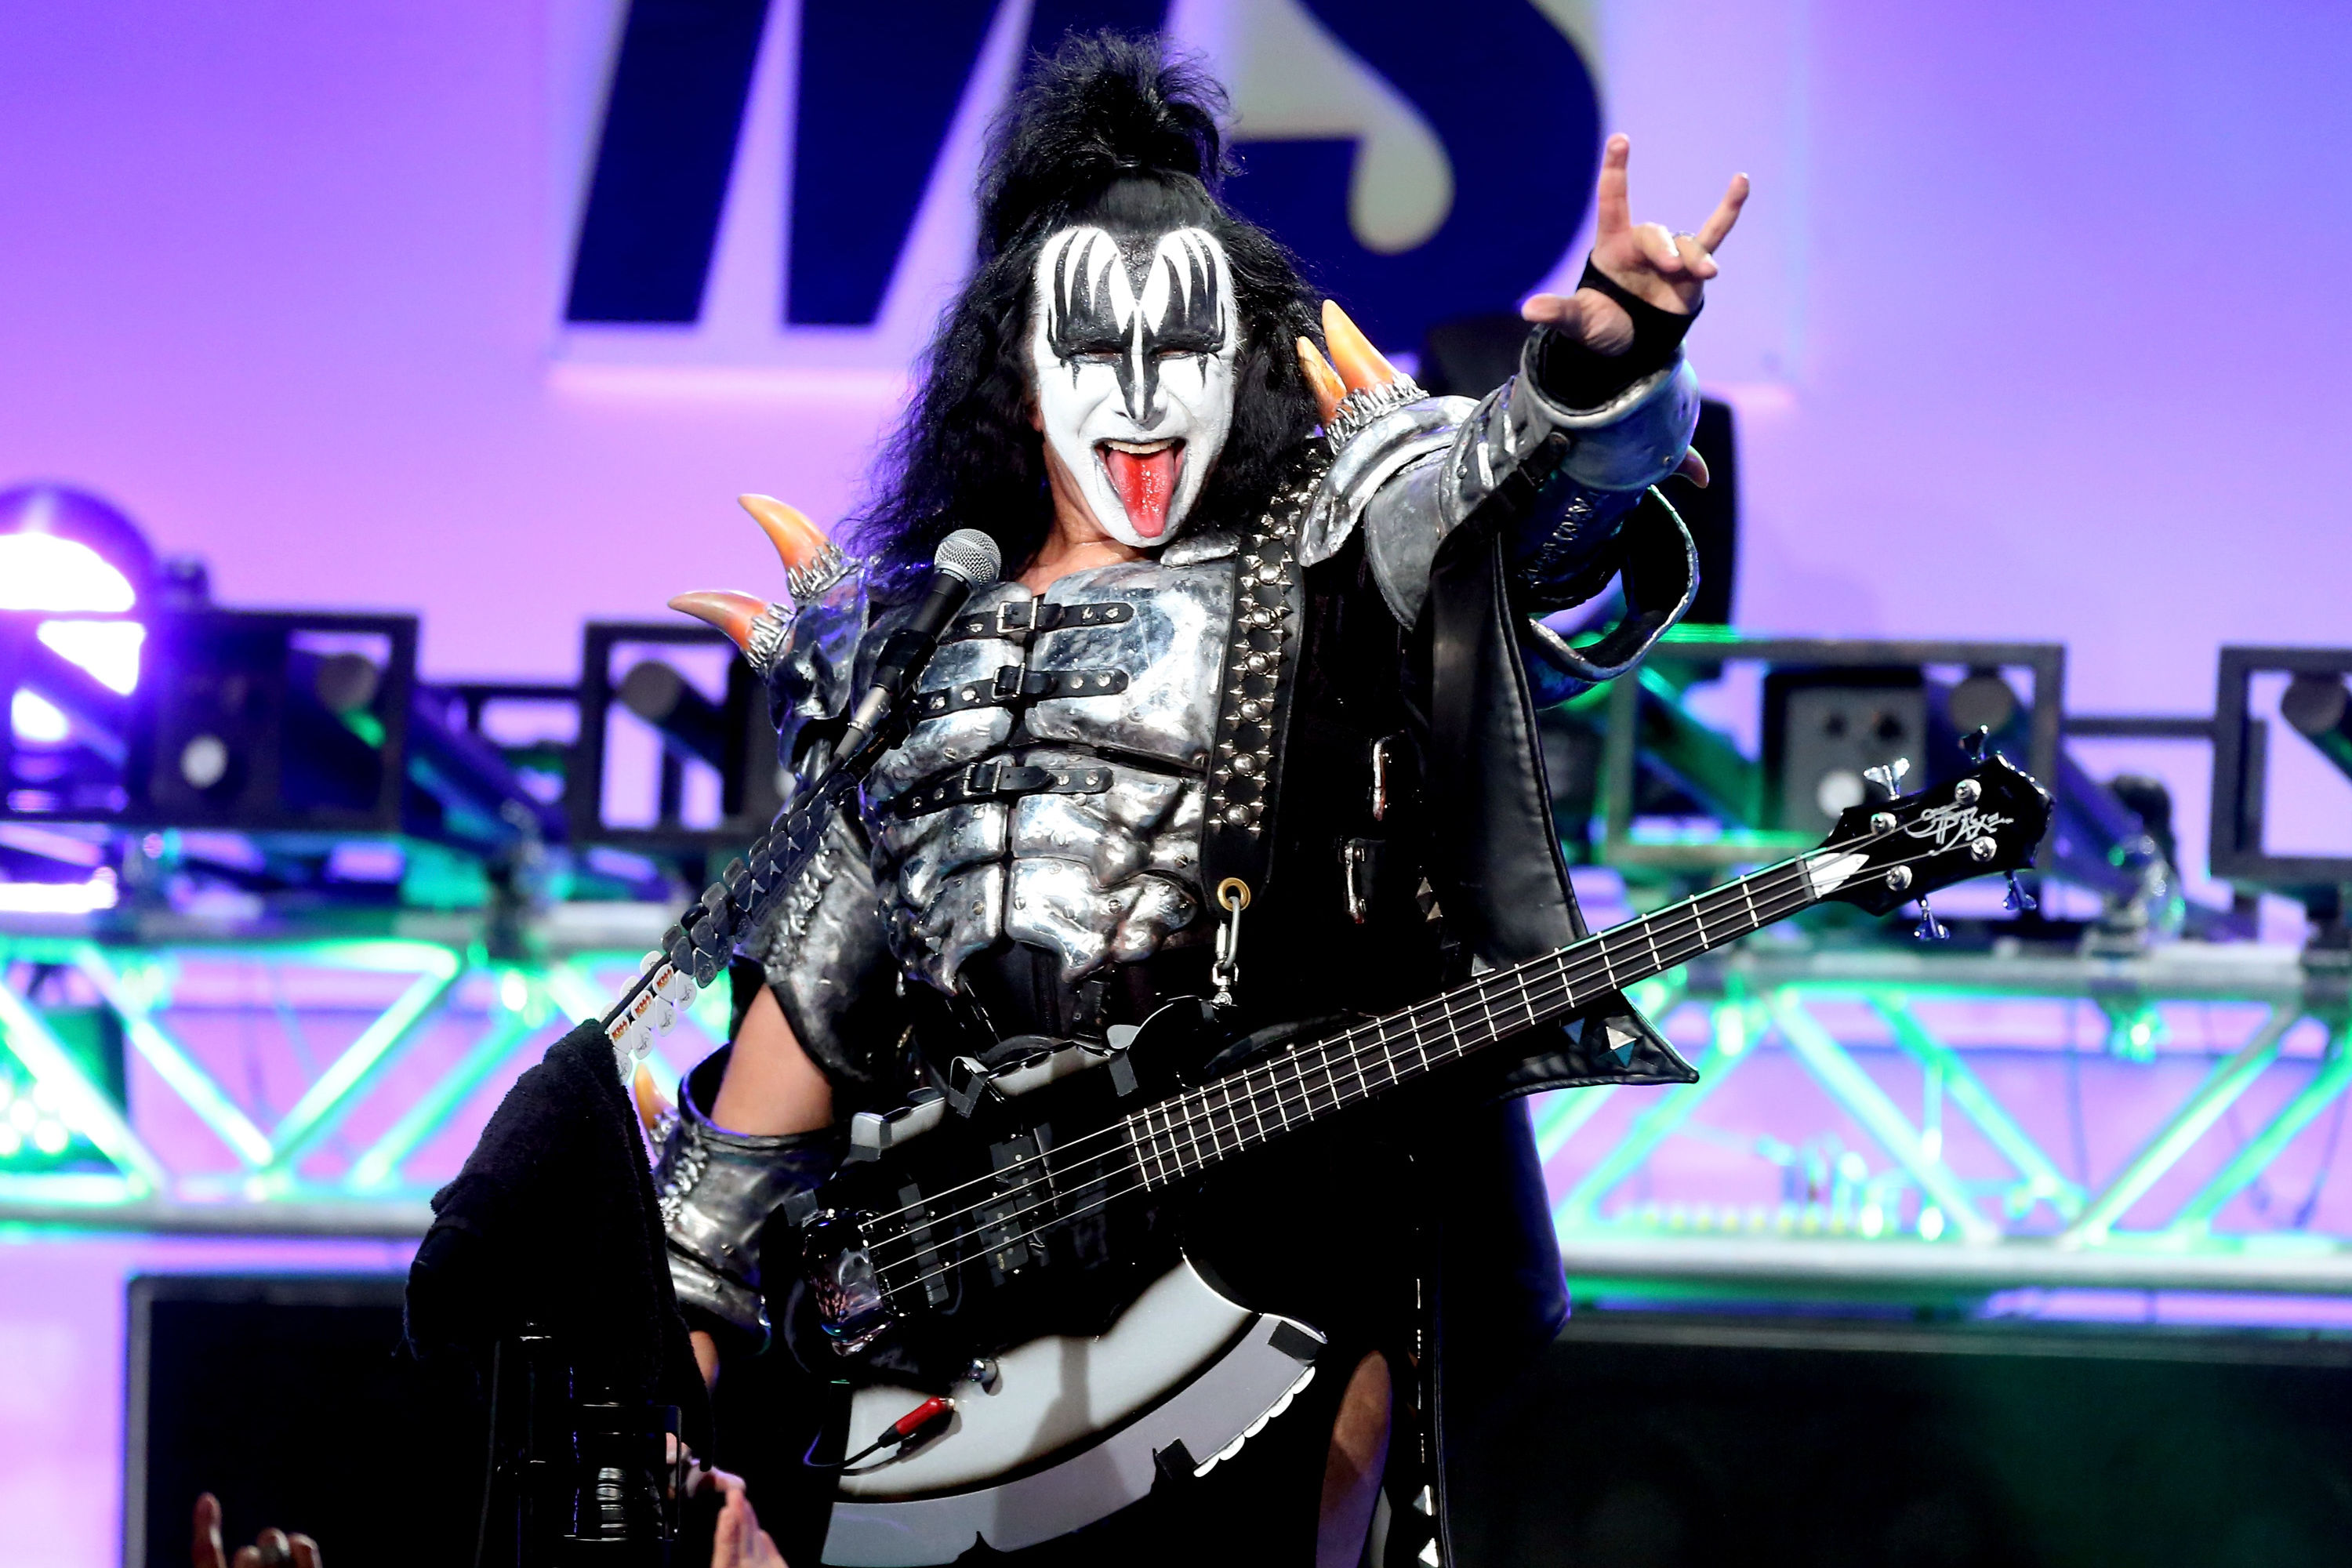 We May Have Found the Most Adorable Gene Simmons Look-Alike